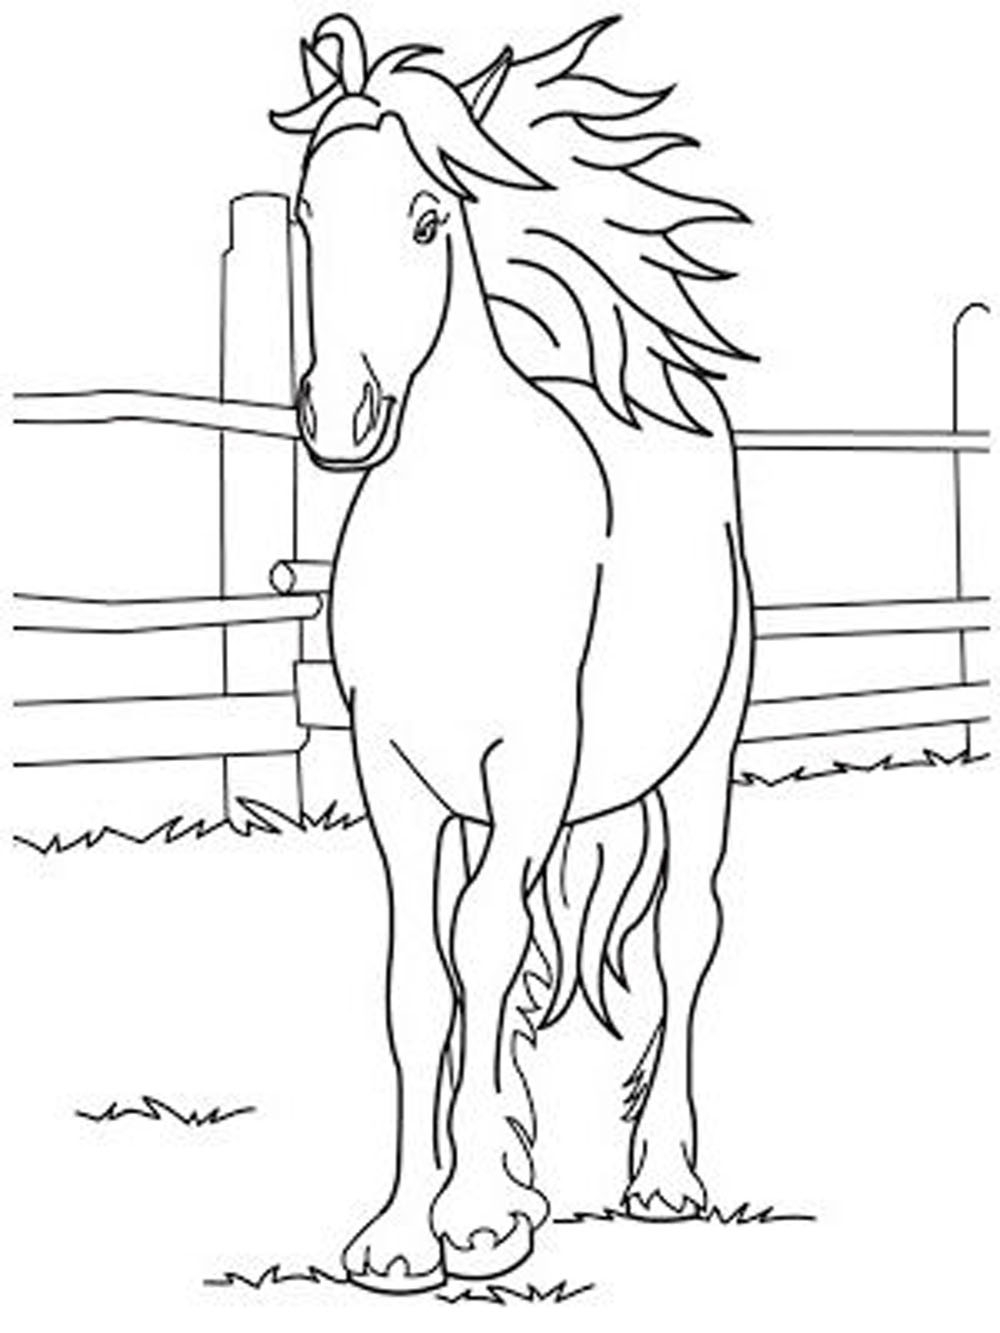 Breakthrough Race Horse Coloring Pages To Print Fun For Your Kids Gallery Of Racing